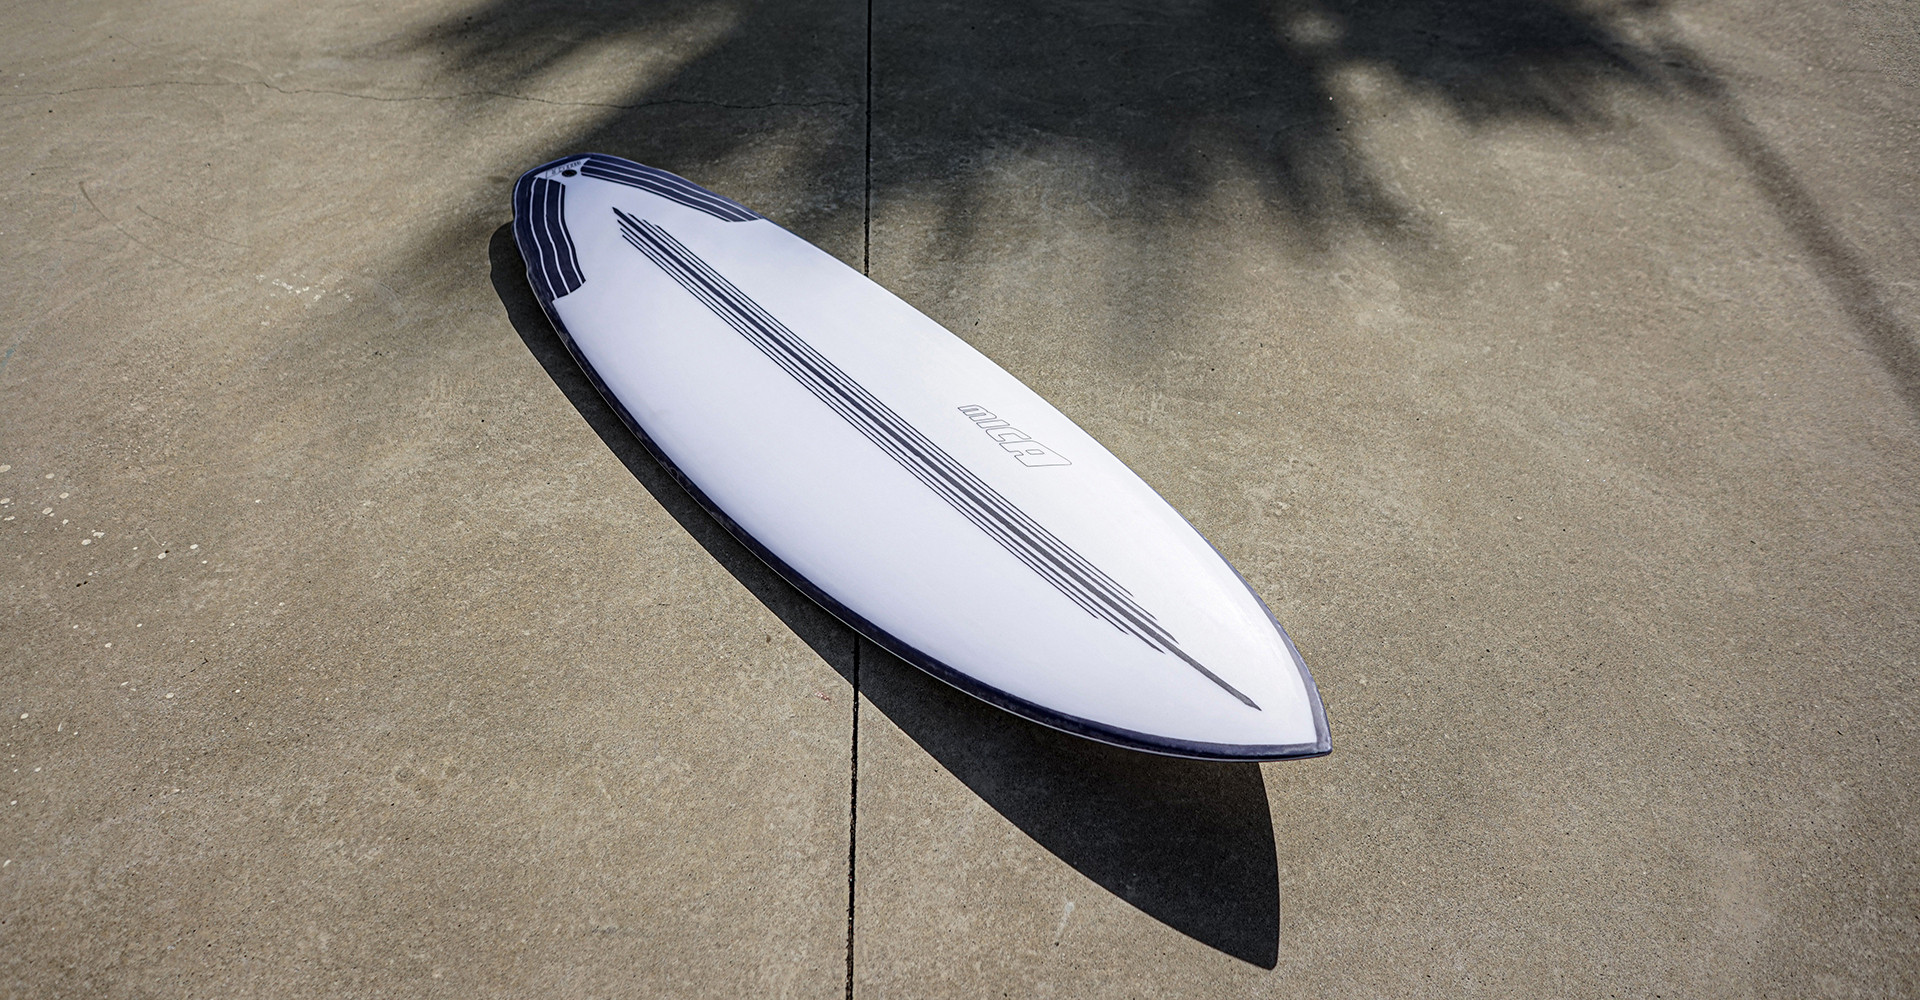 The Peter's Relaunch in Epoxy with Carbon - custom shape by Micasurfboards